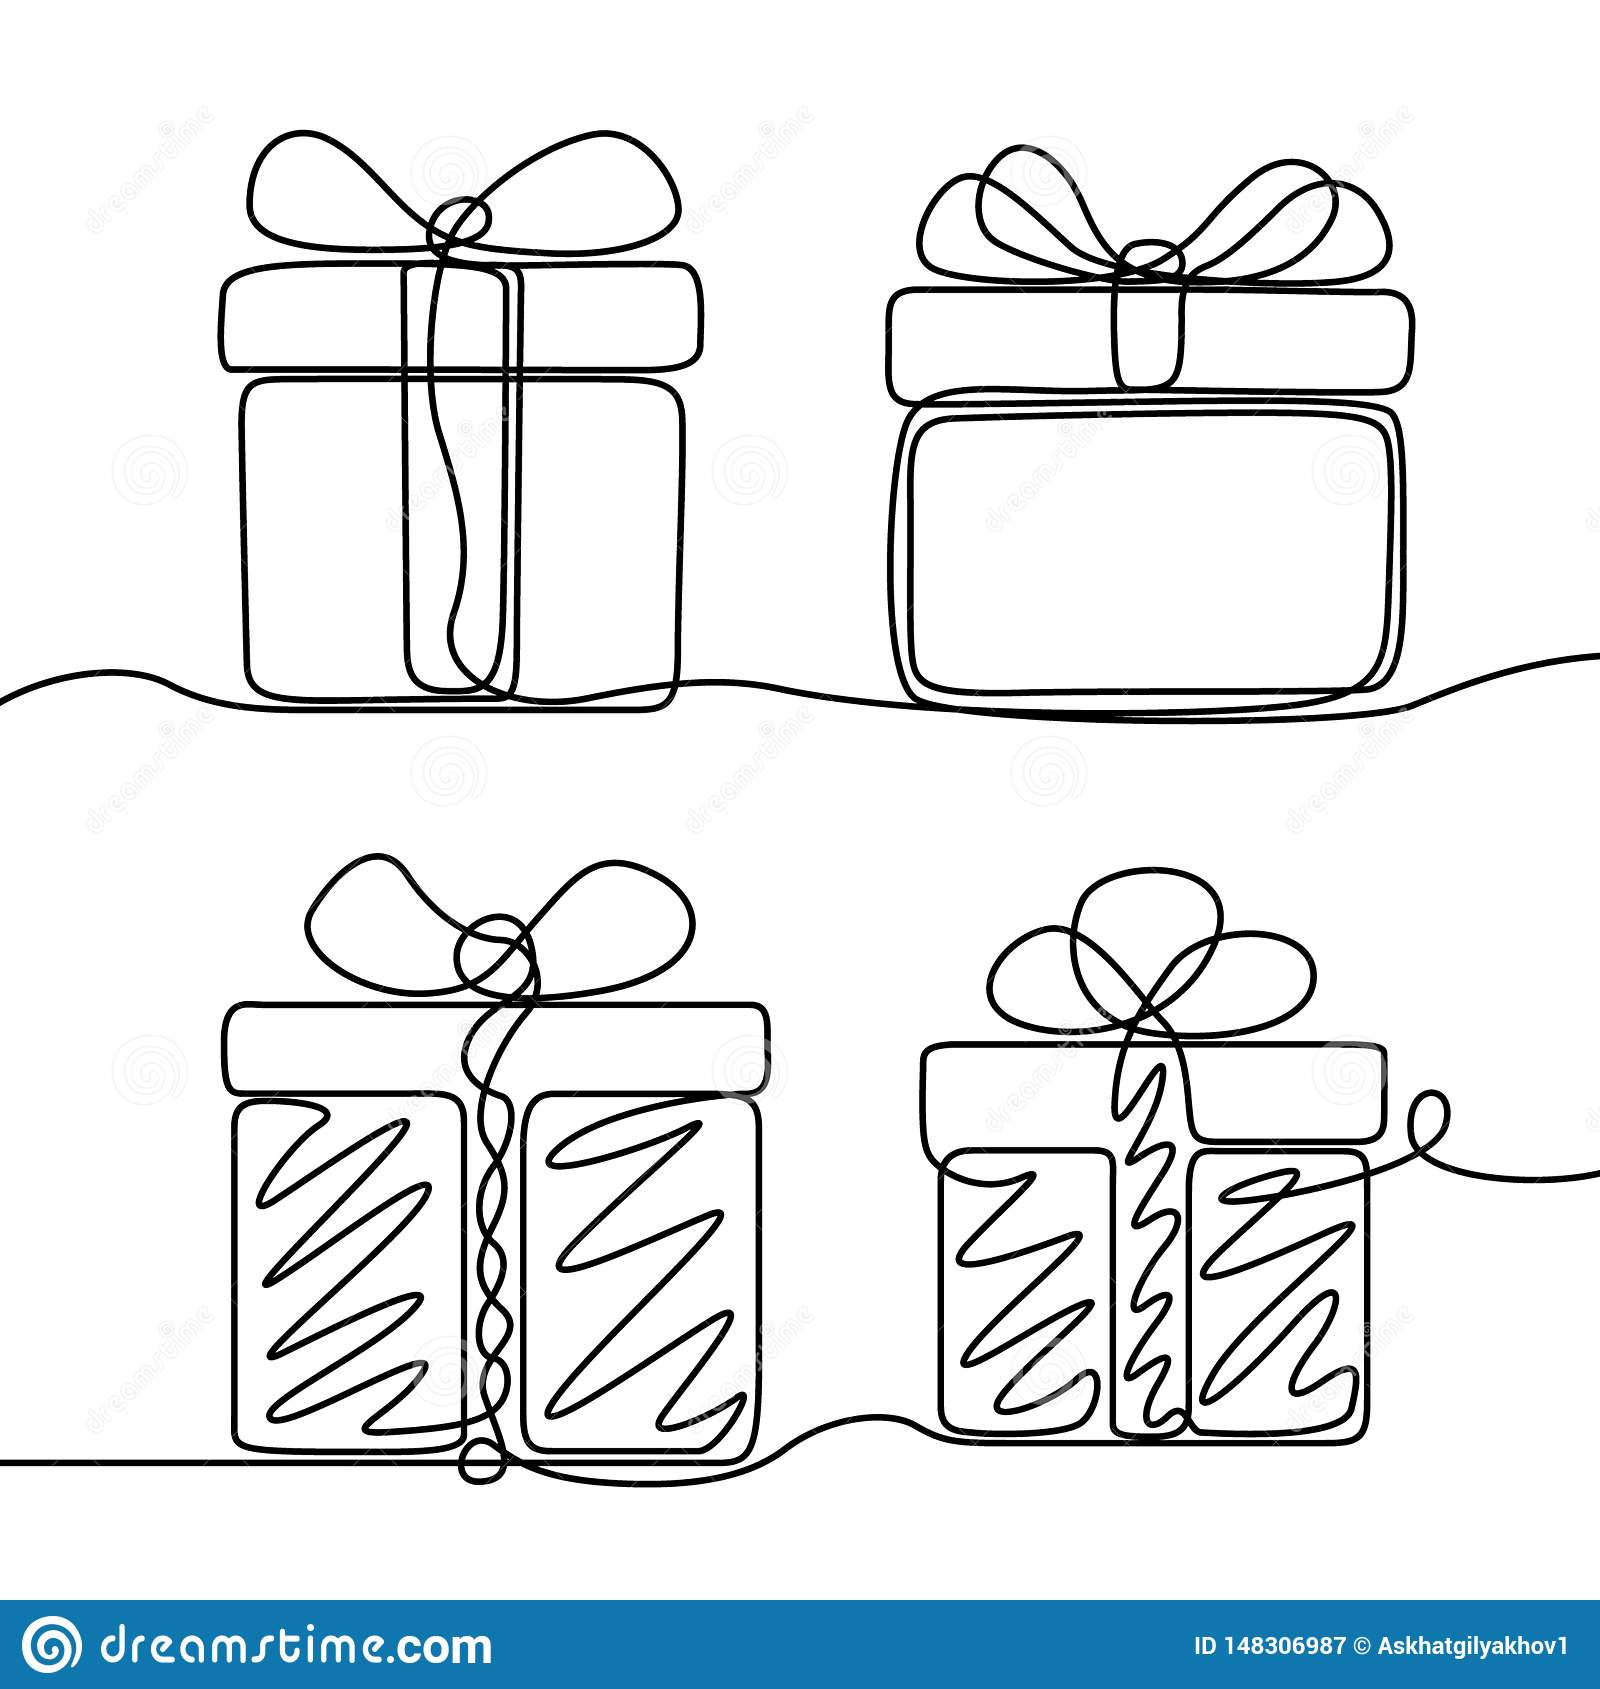 Continuous line drawing set of Gifts box . New Year and Happy Christmas theme